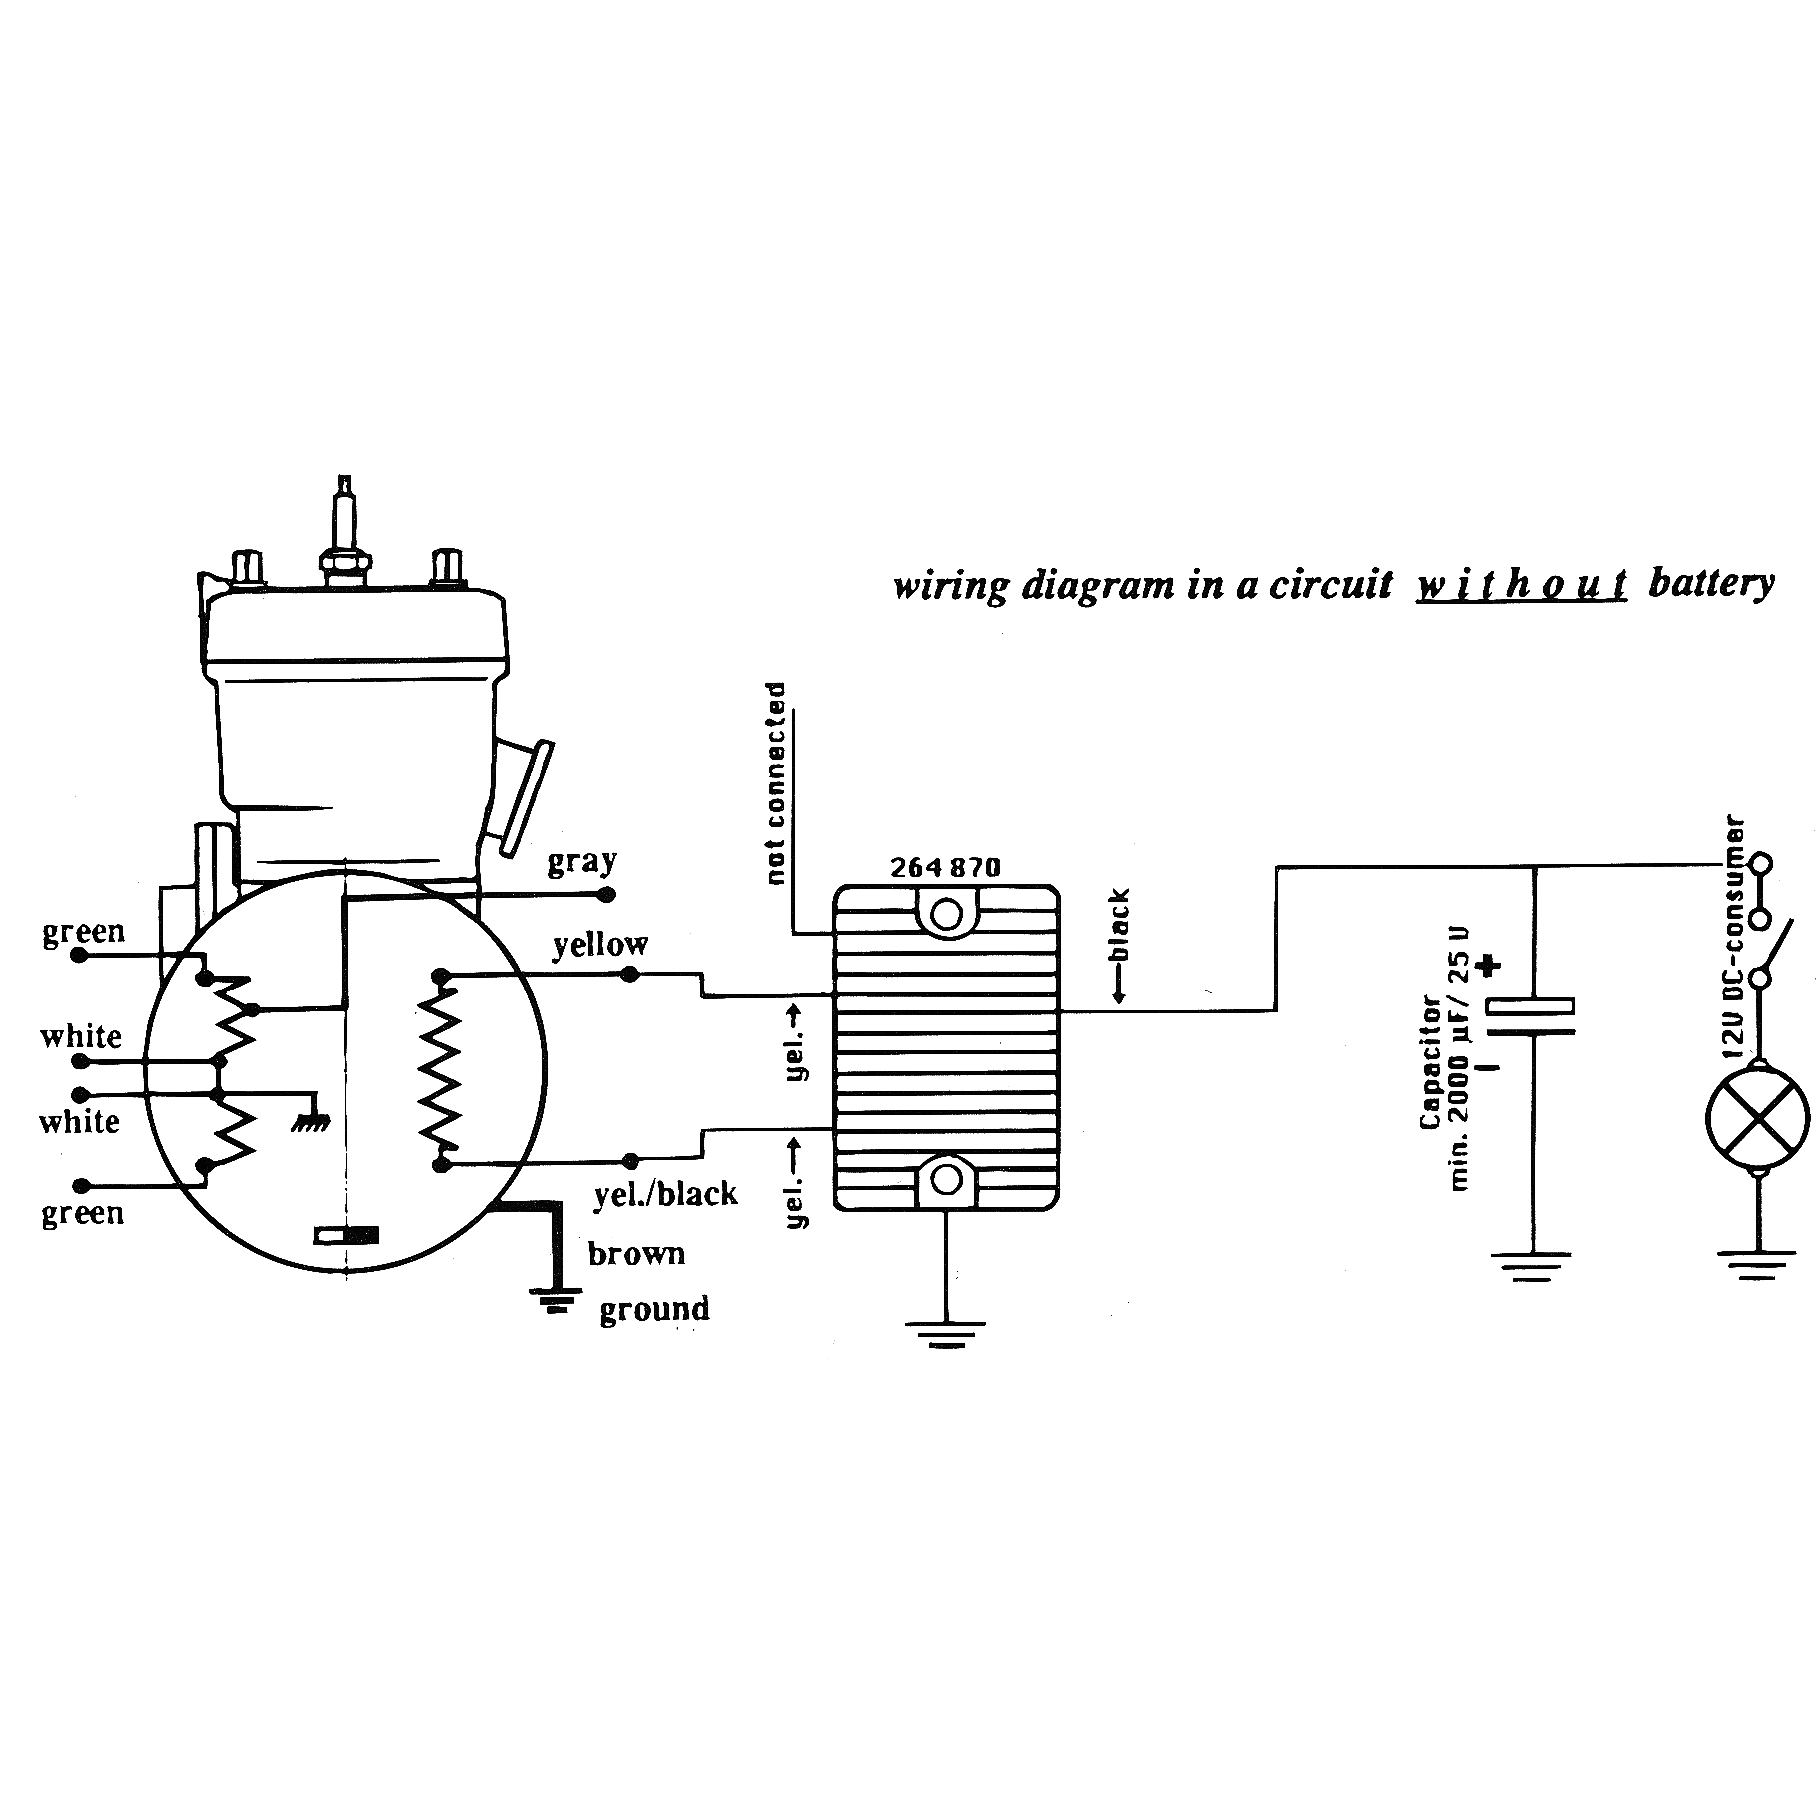 [DIAGRAM_1CA]  ER_7147] Rotax Ignition Points Wiring Diagram Free Download Schematic Wiring | Rotax 447 Wiring Diagram |  | Ophag Numap Mohammedshrine Librar Wiring 101